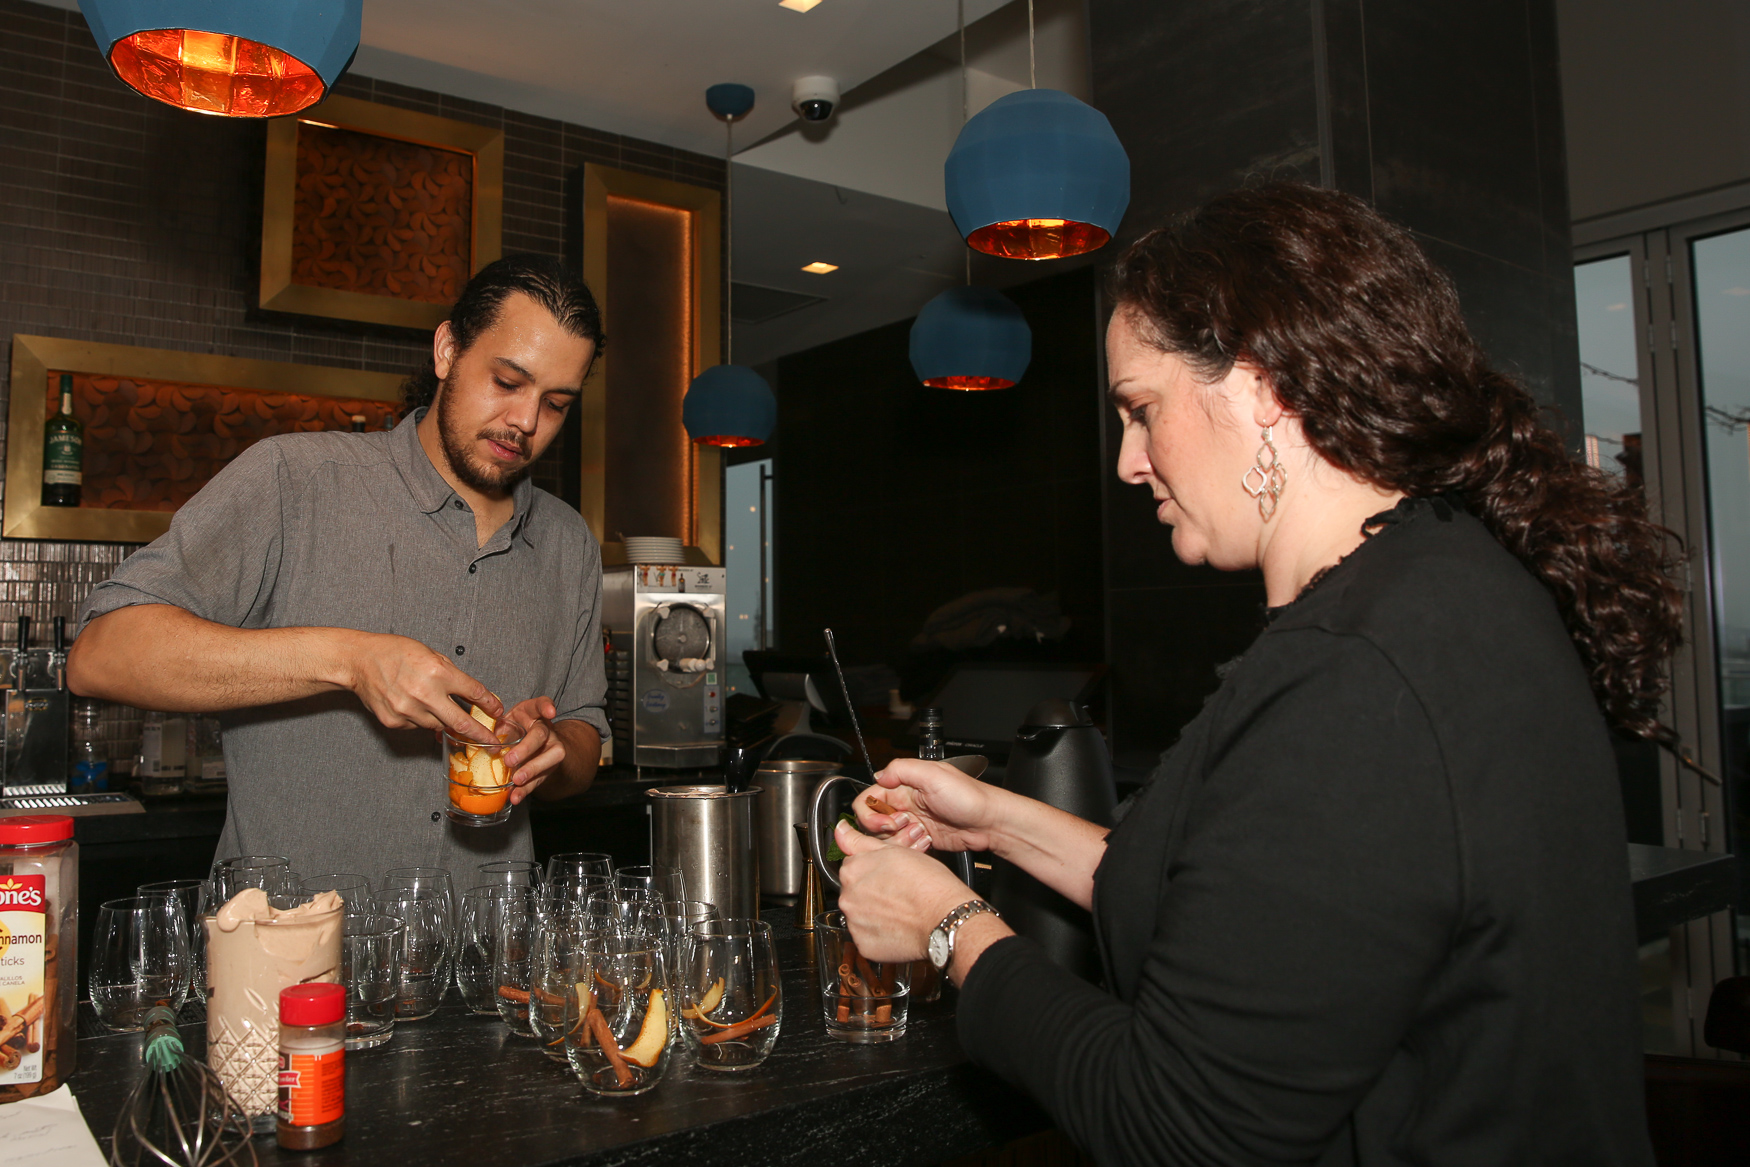 DC Refined and Whiskey Charlie hosted more than 20 people for a cocktail class on December 1. Guests were treated to three warm cocktails, plus a lesson on how to make all of them, as well as a gift bag and raffle prizes, which included Capitals tickets, beauty goods from Blue Mercury and more. This is the final class of 2018, but never fear - we'll be back with our monthly cocktail classes in 2019. (Amanda Andrade-Rhoades/DC Refined)